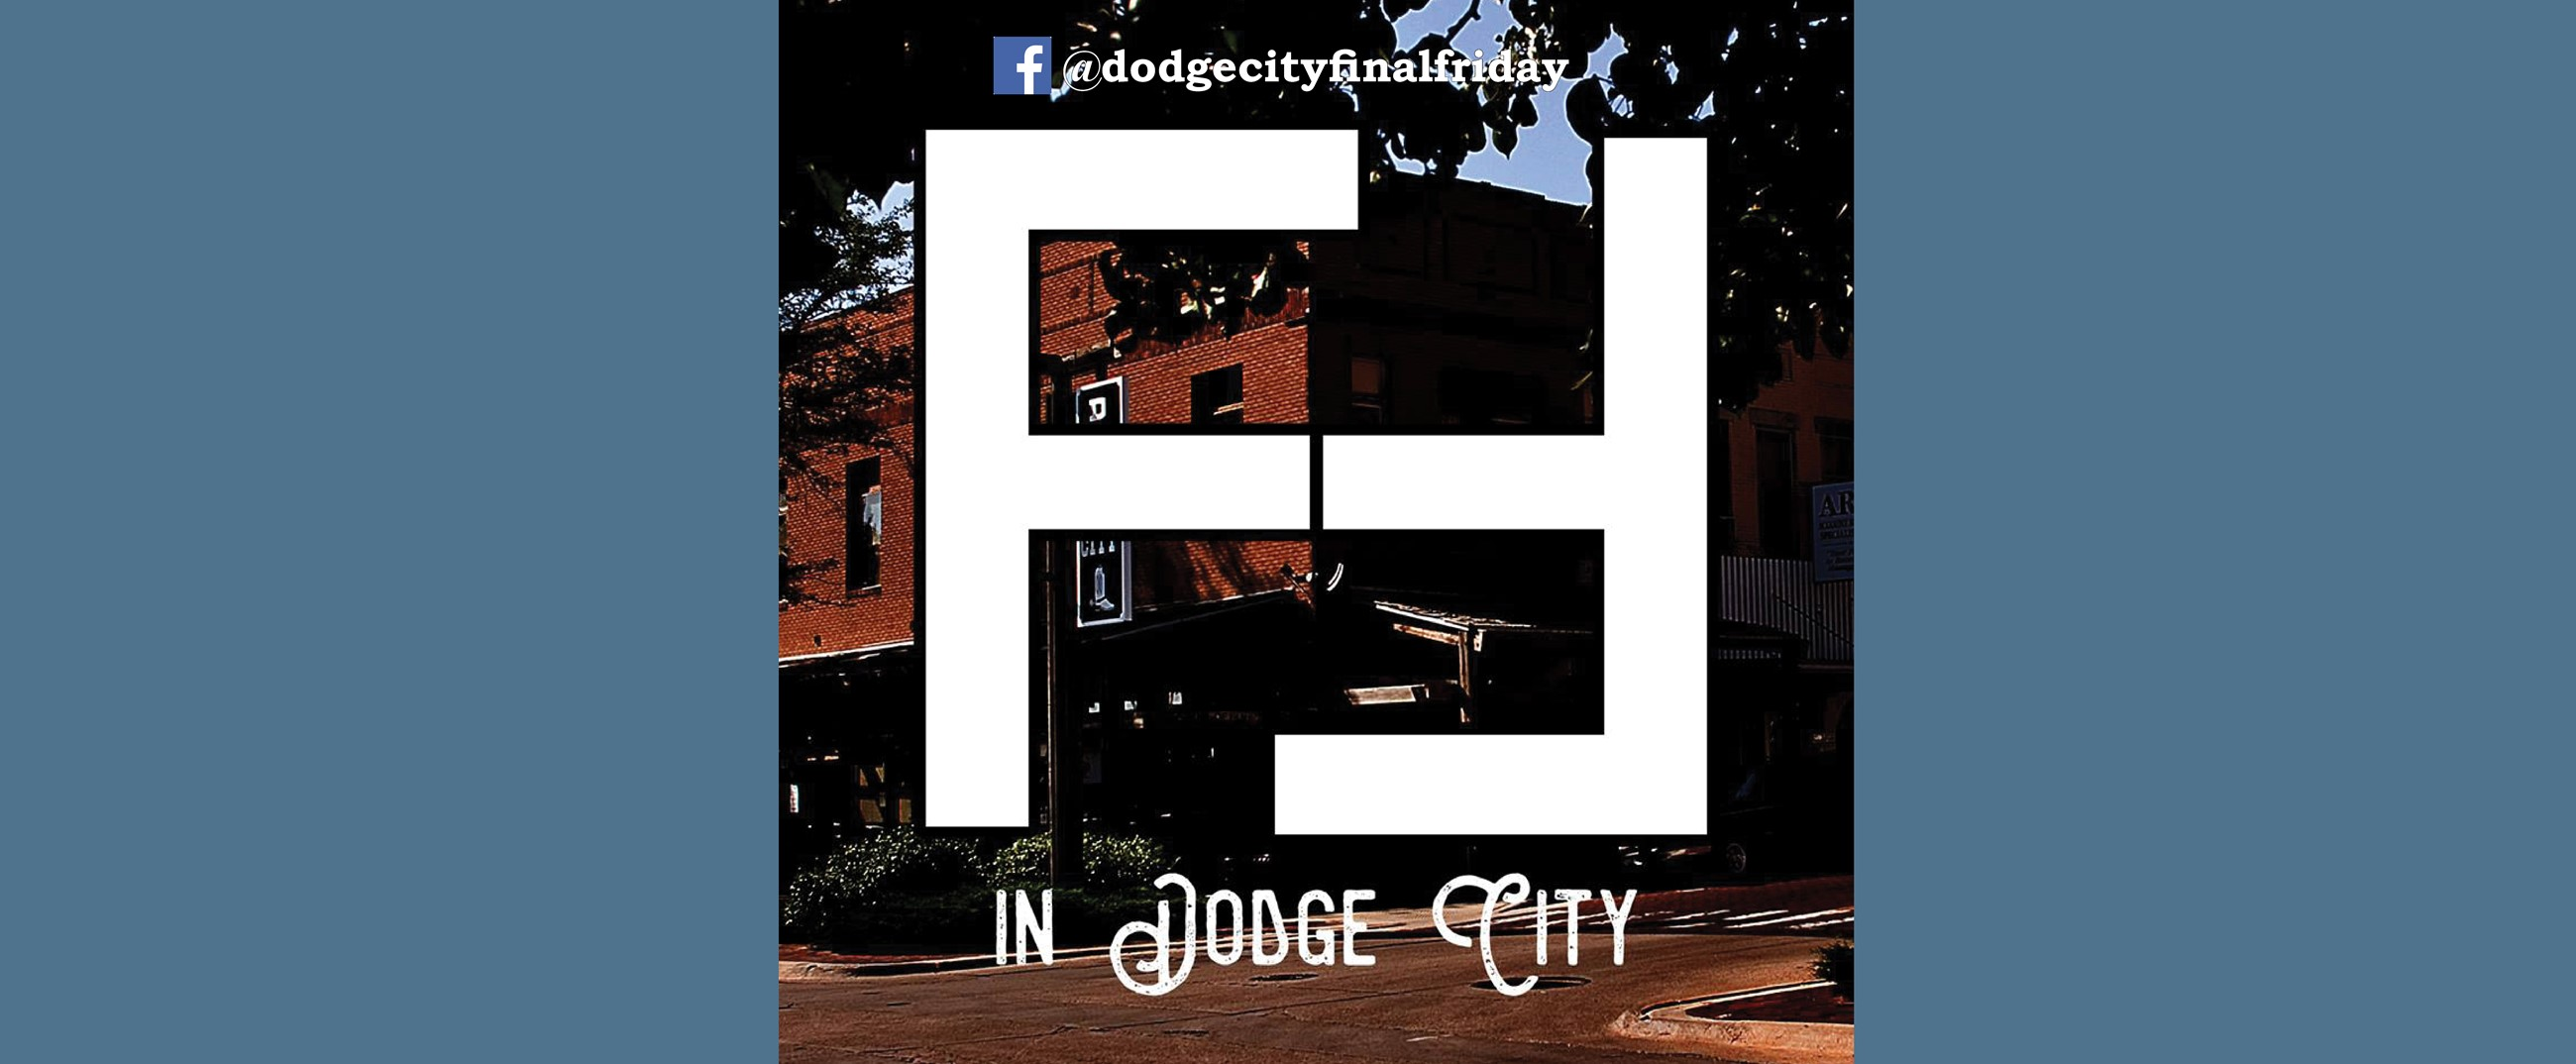 Final Fridays in Dodge City